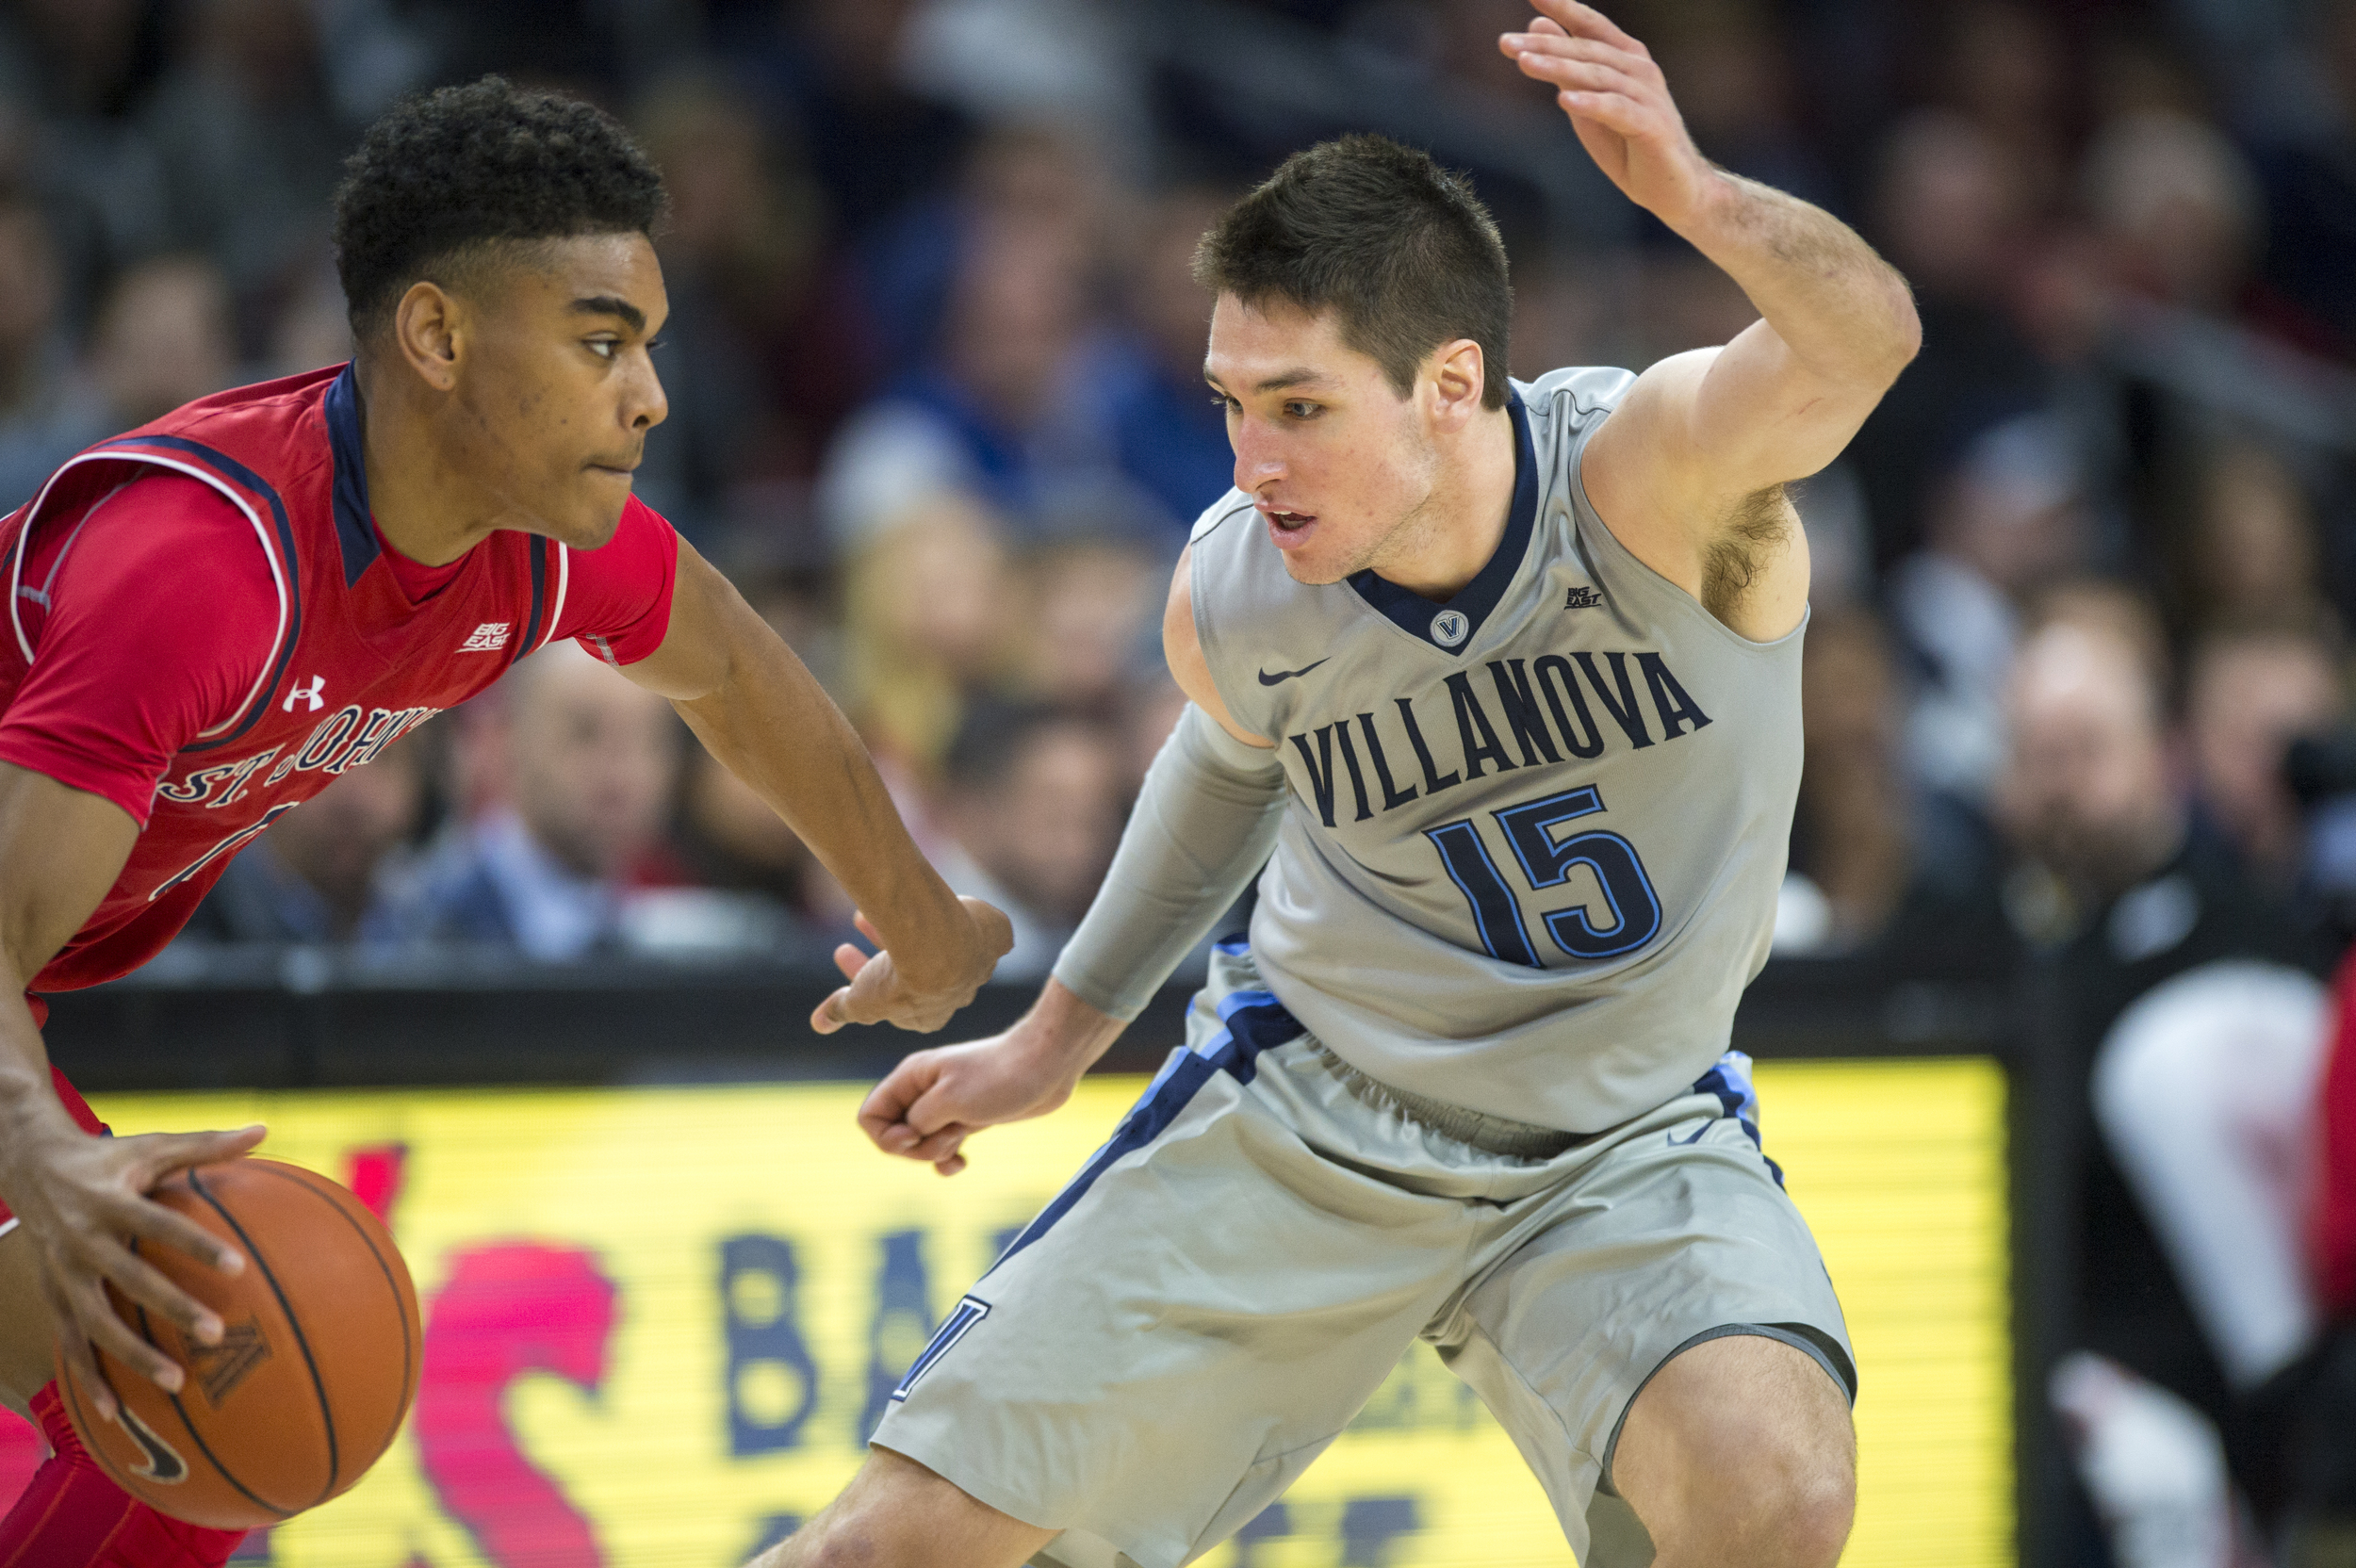 13 February 2016: Villanova Wildcats guard Ryan Arcidiacono (15) puts the pressure on St. John's Red Storm guard Malik Ellison (0) during the NCAA basketball game between the St. John's Red Storm and the Villanova Wildcats played at the Wells Fargo Center in Philadelphia, PA. (Photo by Gavin Baker/Icon Sportswire)